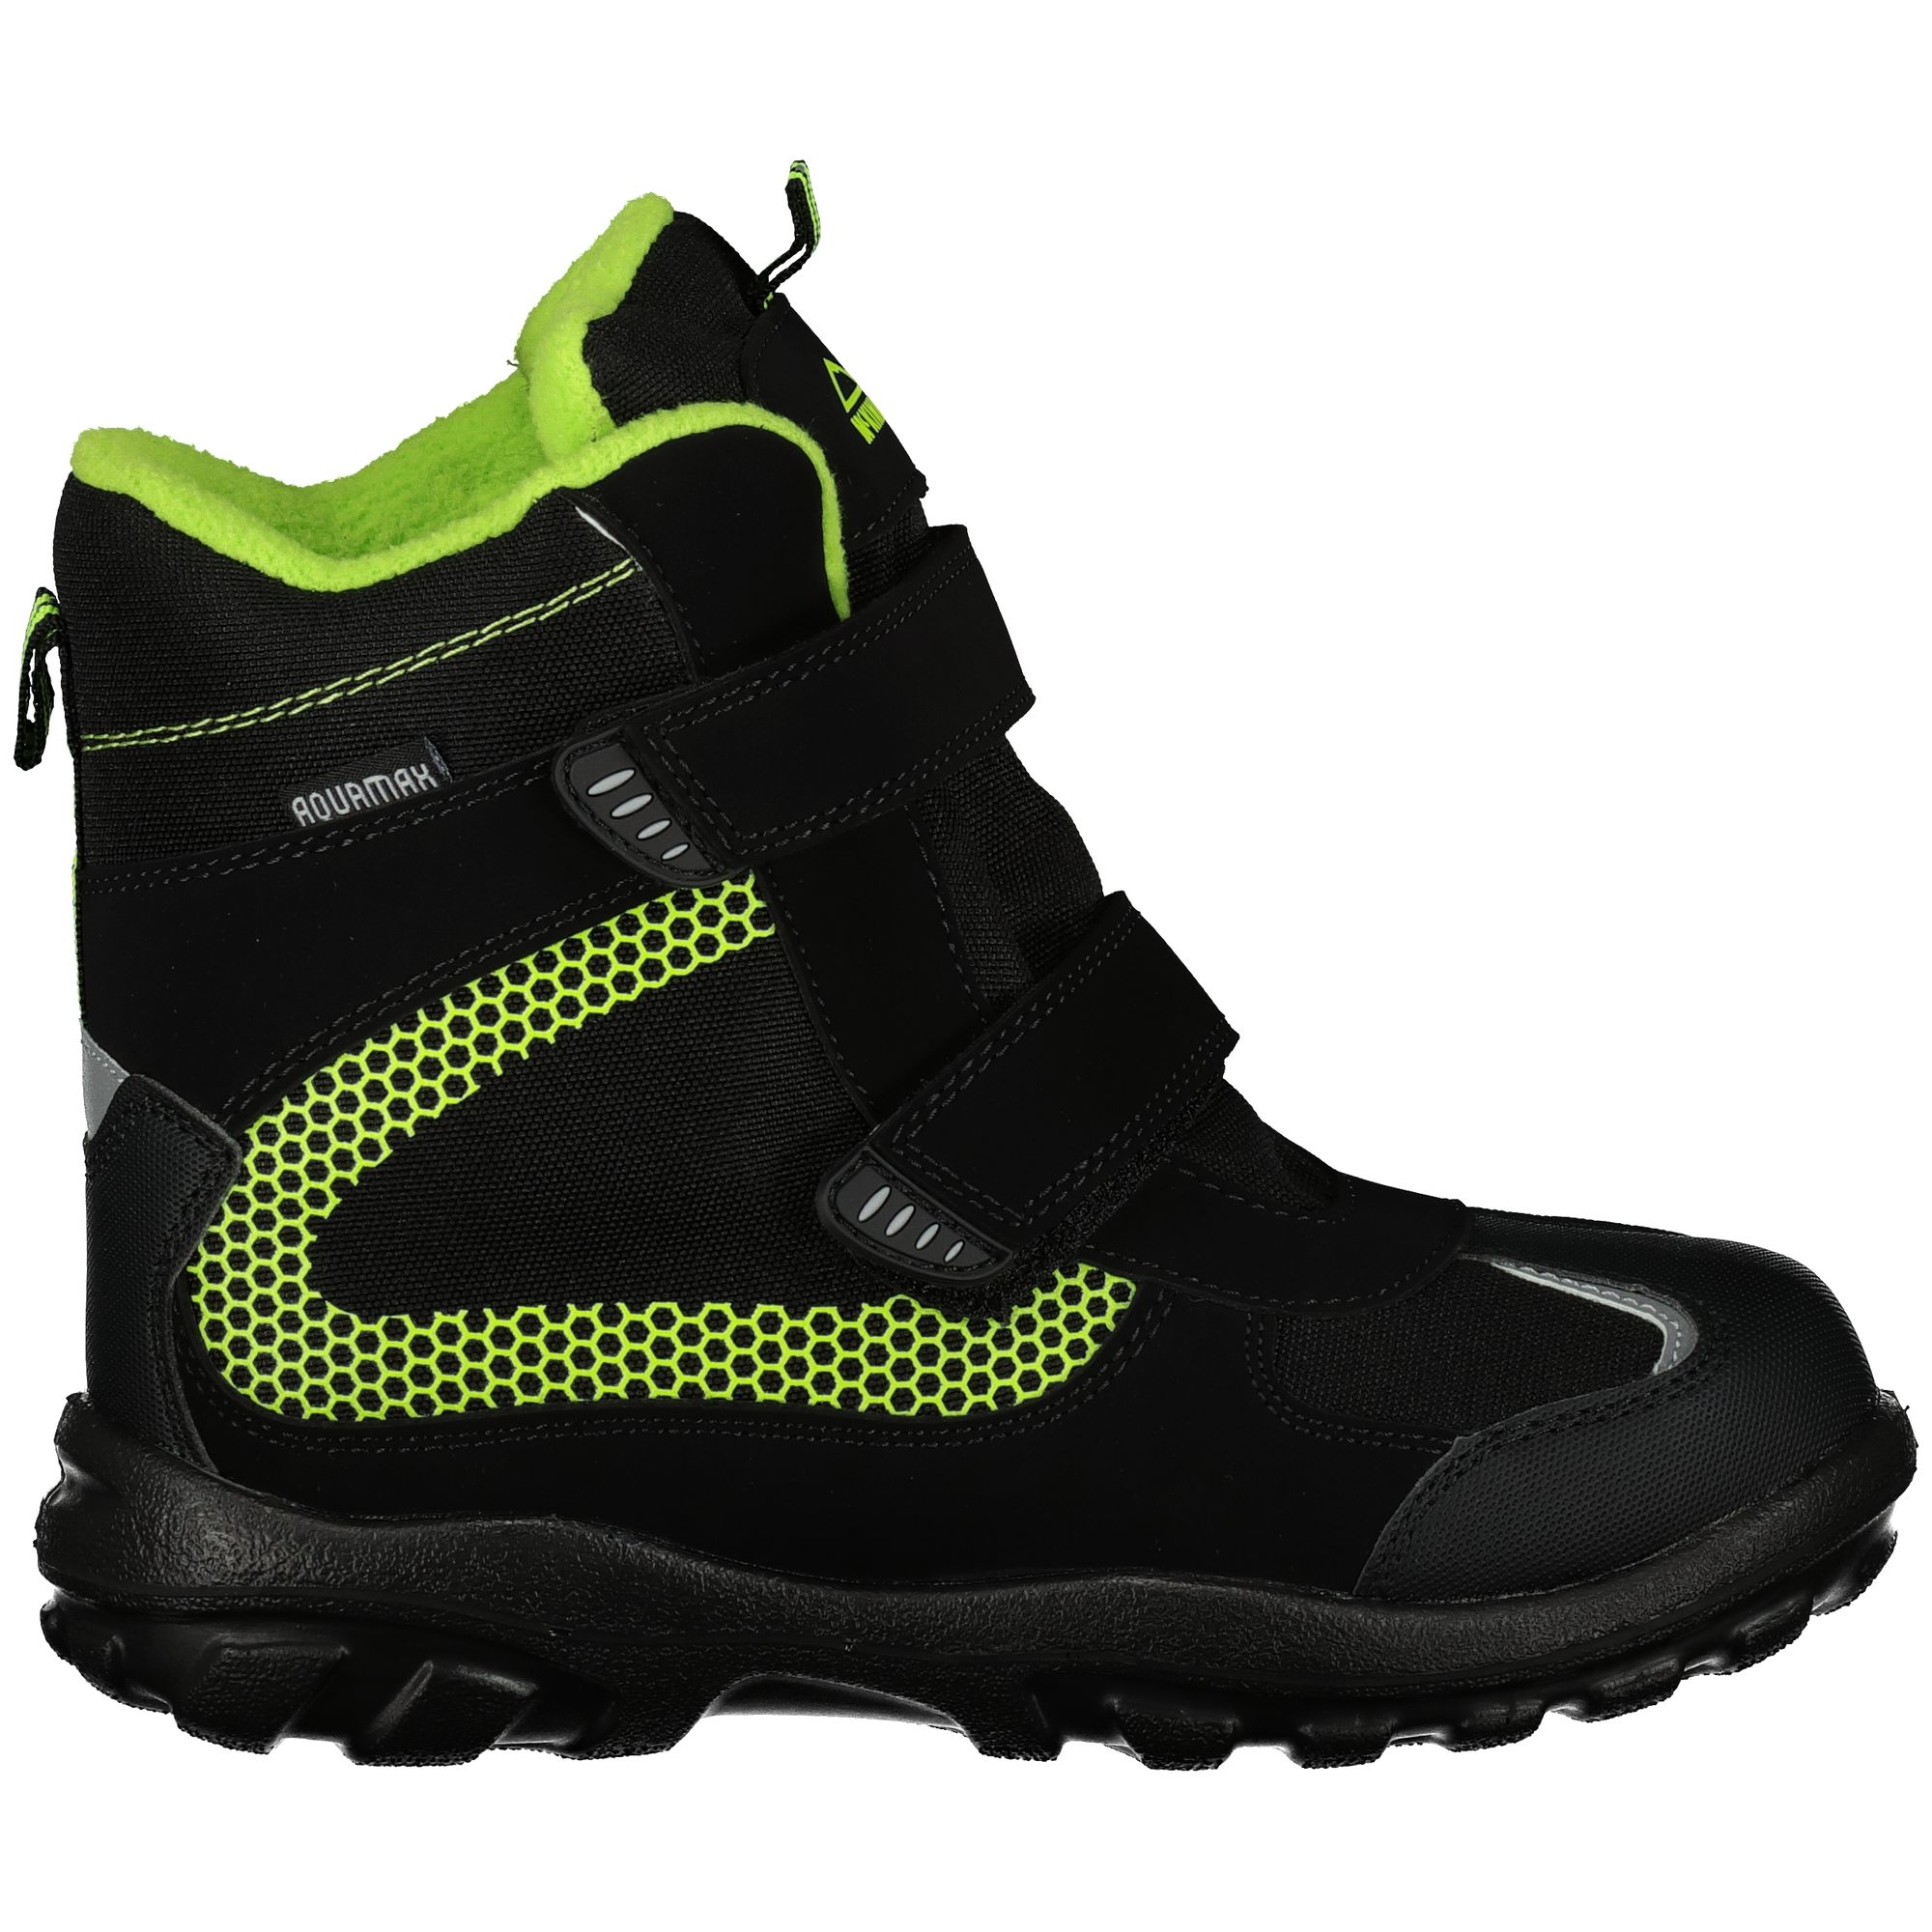 on sale 73840 10db0 McKinley Snowtime AQX ISE Winterstiefel Jungen Black Green Kids Schuhe  Stiefel